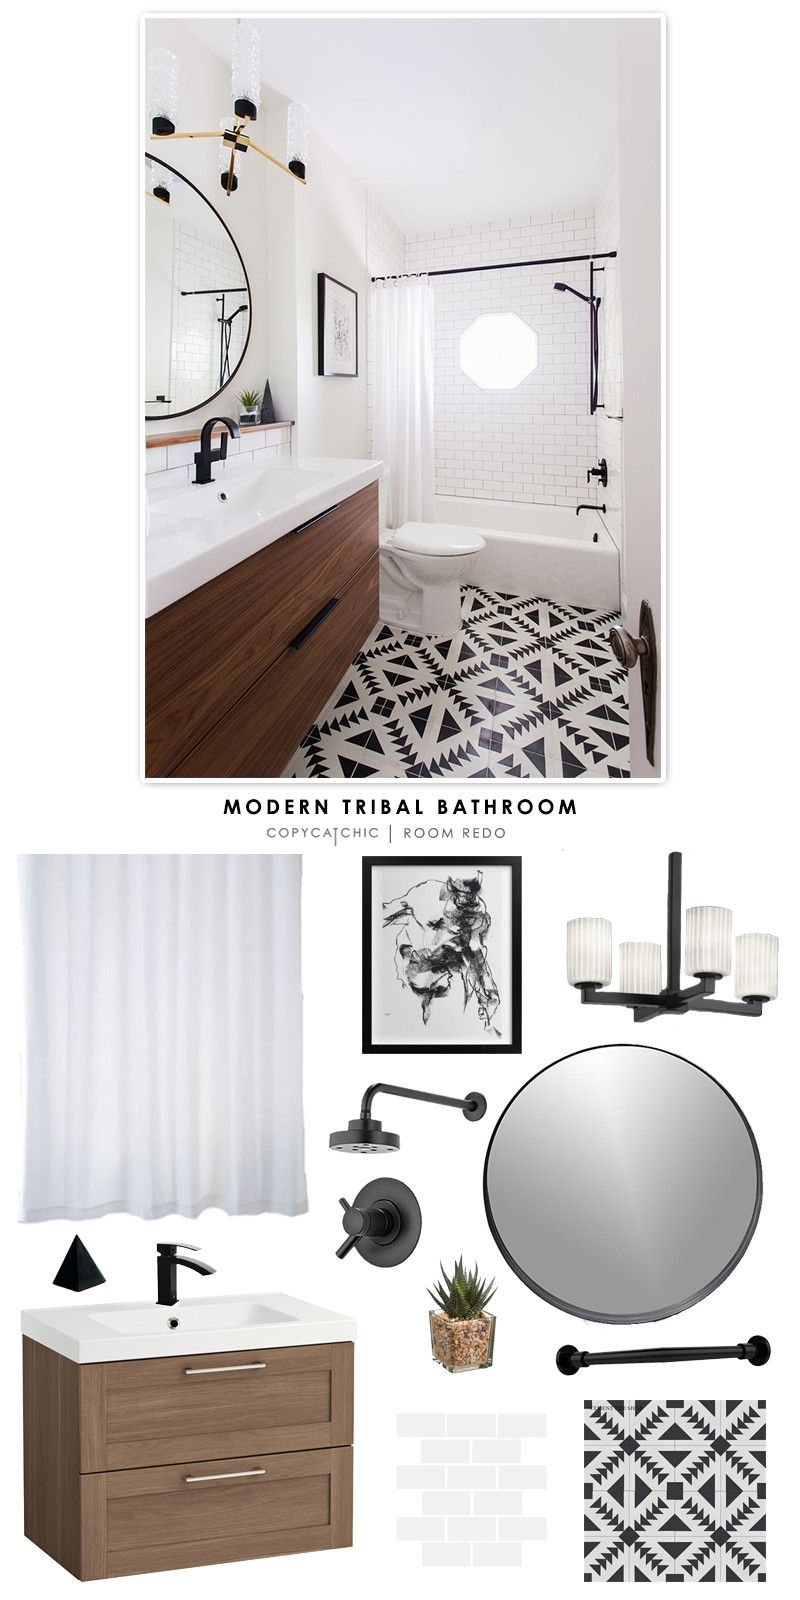 Copy Cat Chic Room Redo | Modern Tribal Bathroom - copycatchic